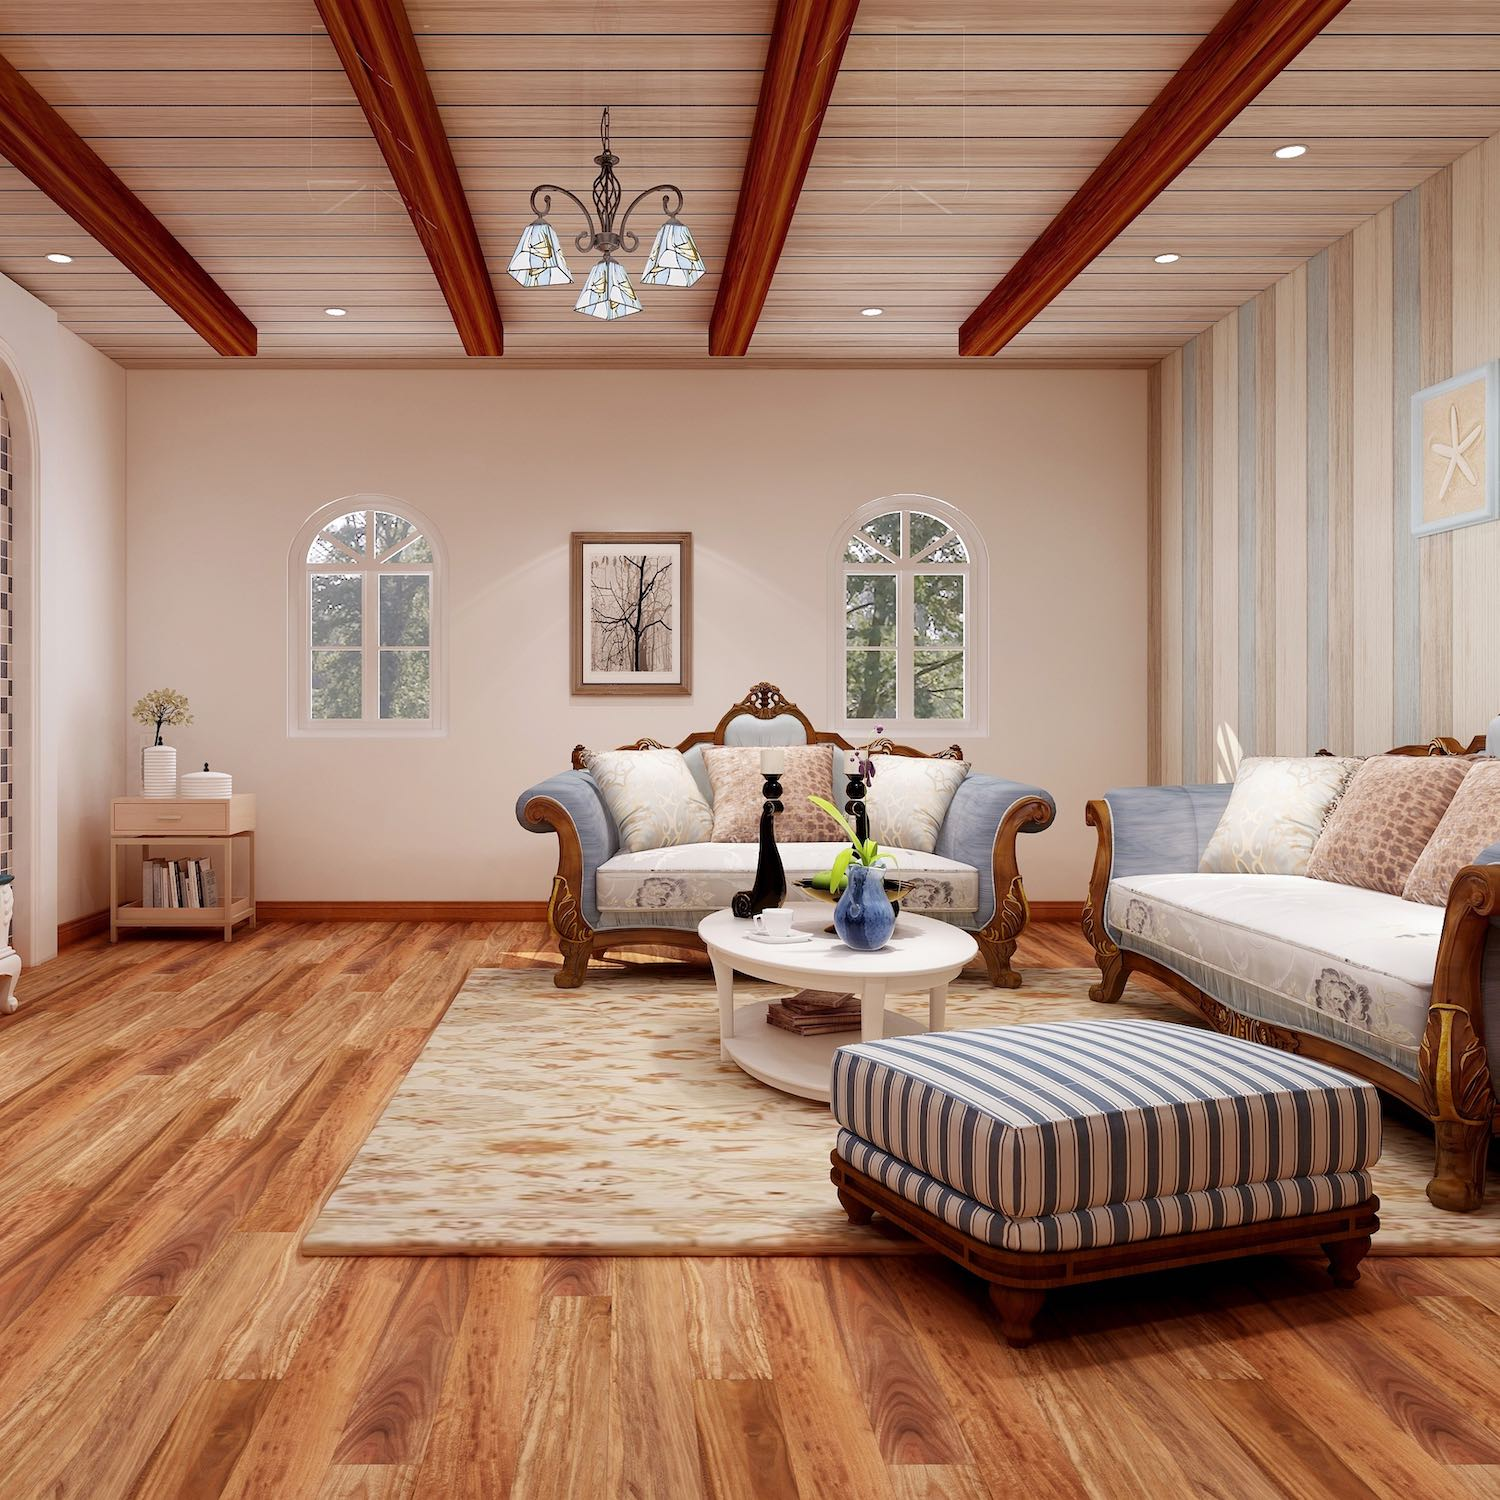 All of our Pre-finished timber comes from sustainable forests & plantations. Why Choose Pre-finished Timber? In today's global market, pre-finished timbers are pretty much the norm. Here are some of the reasons: